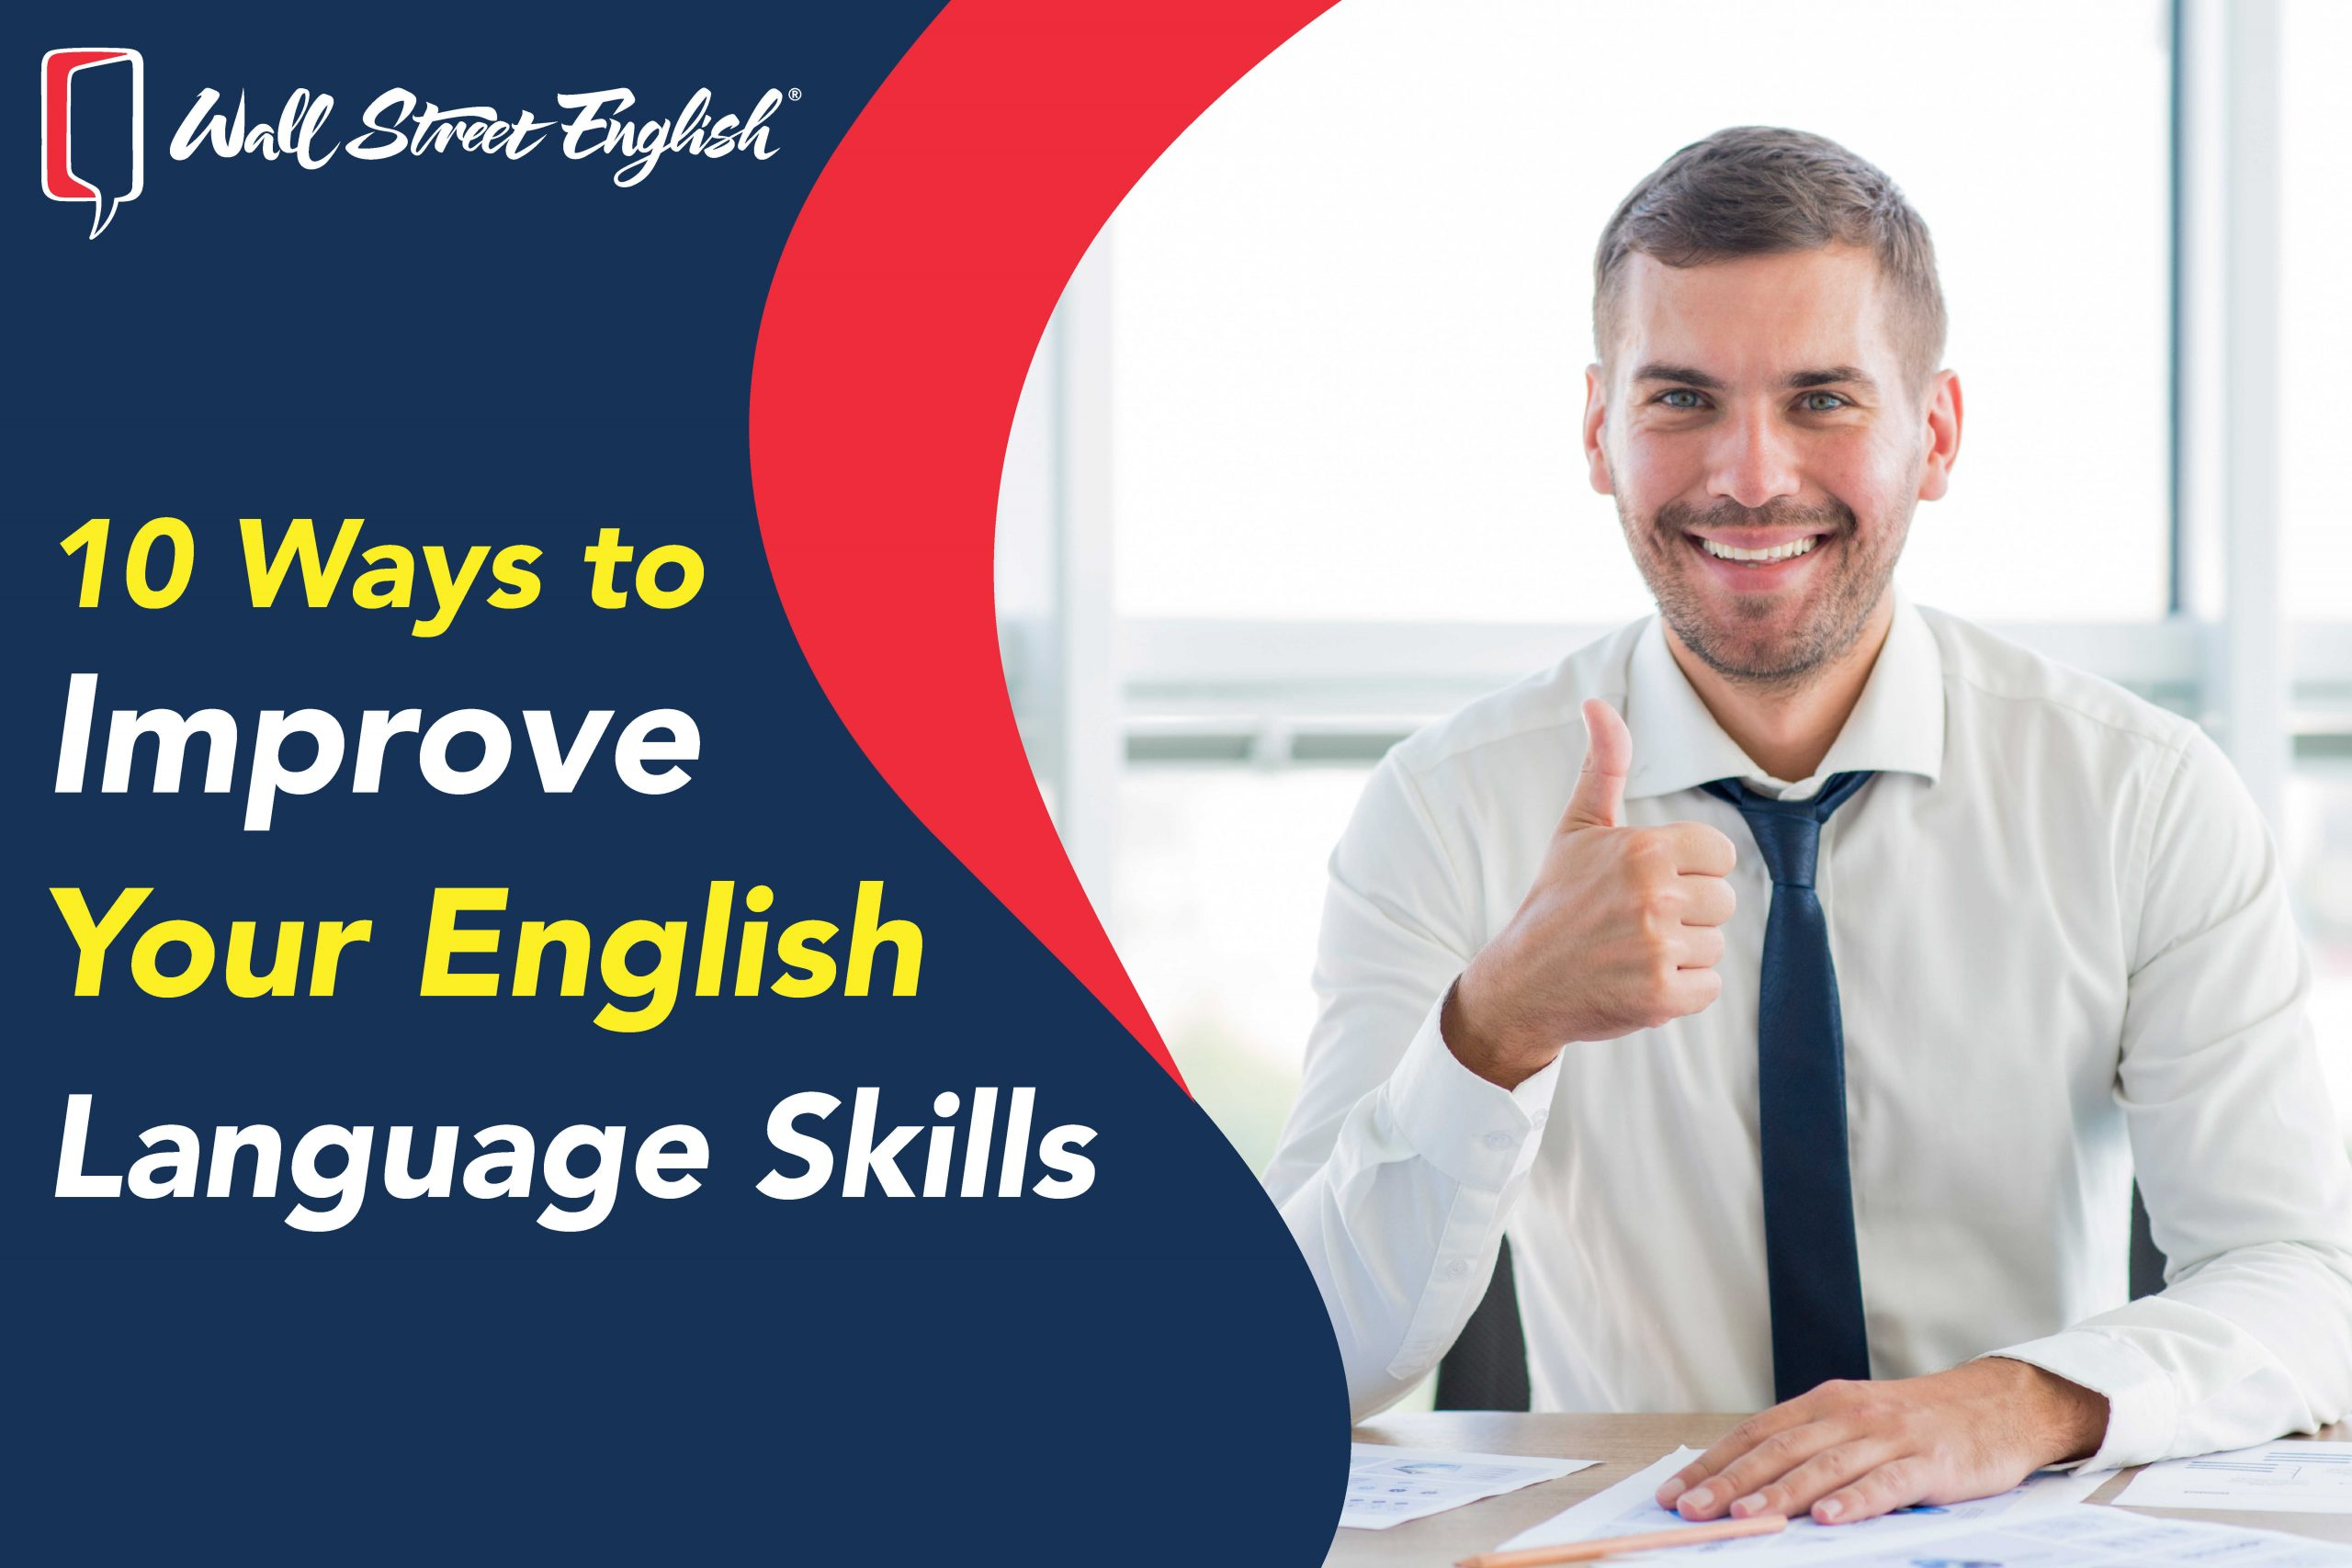 10 Ways To Improve Your English Language Skills